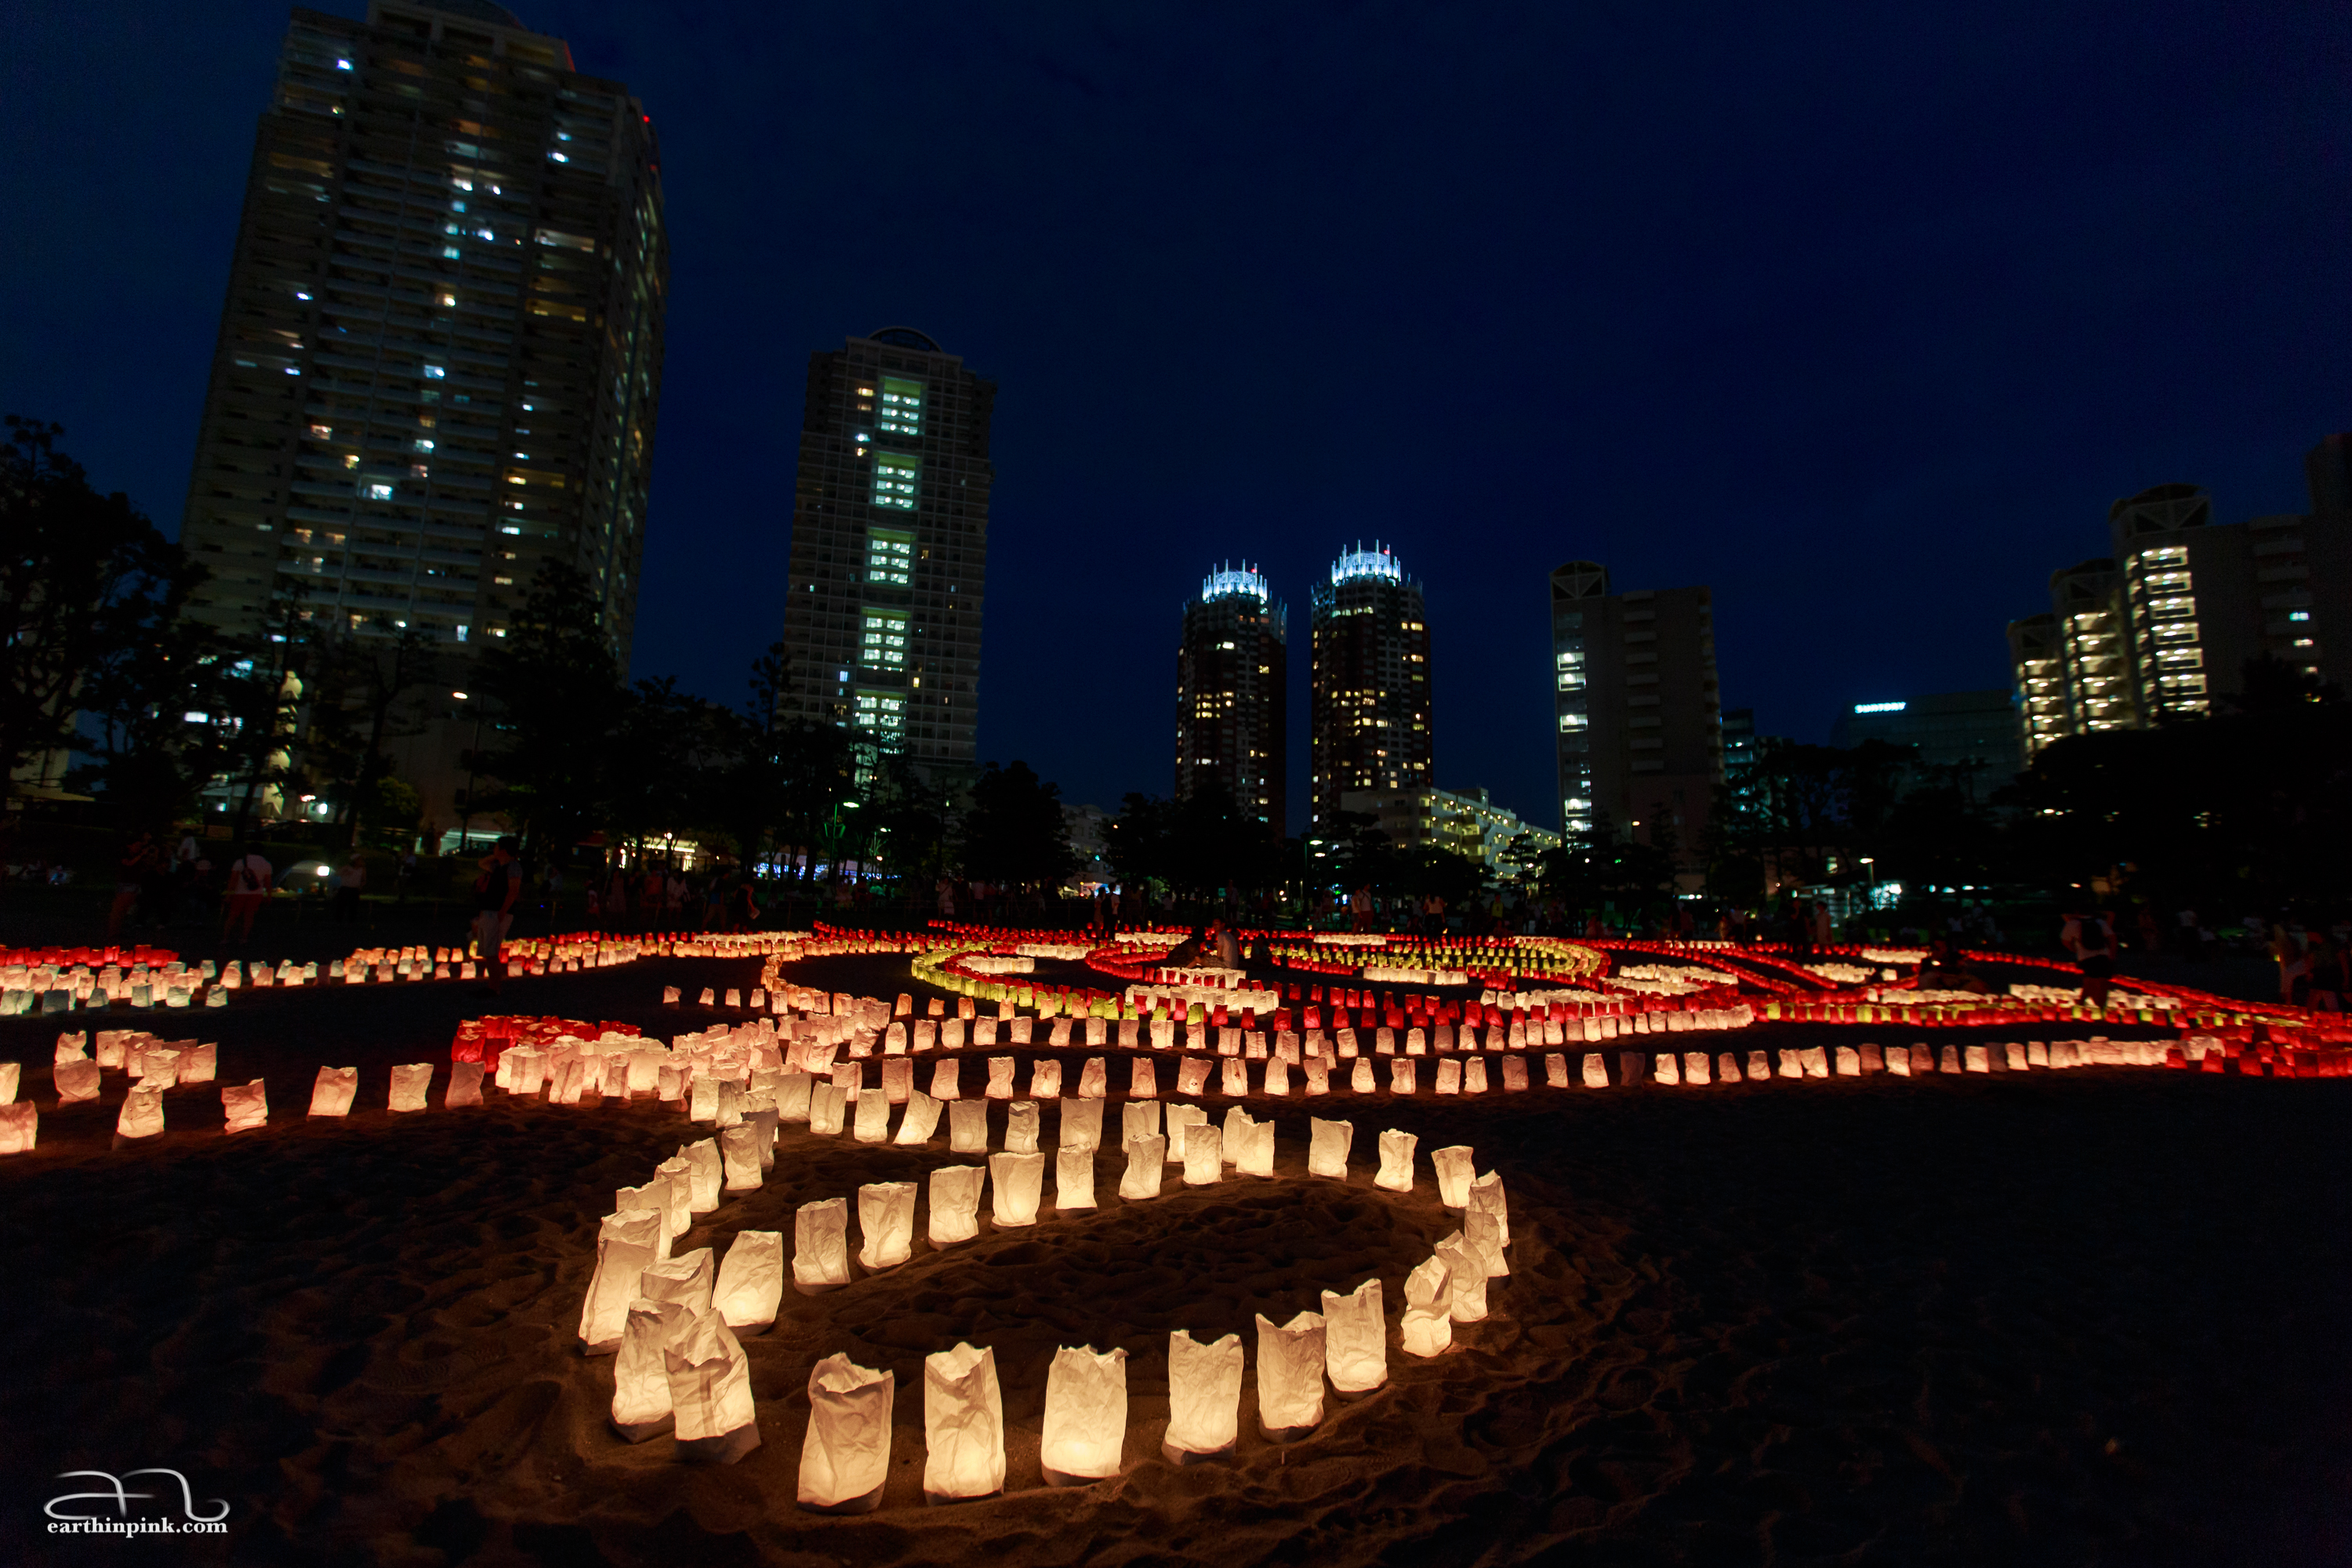 Paper lanterns on the beach against a background of Tokyo skyscrapers.